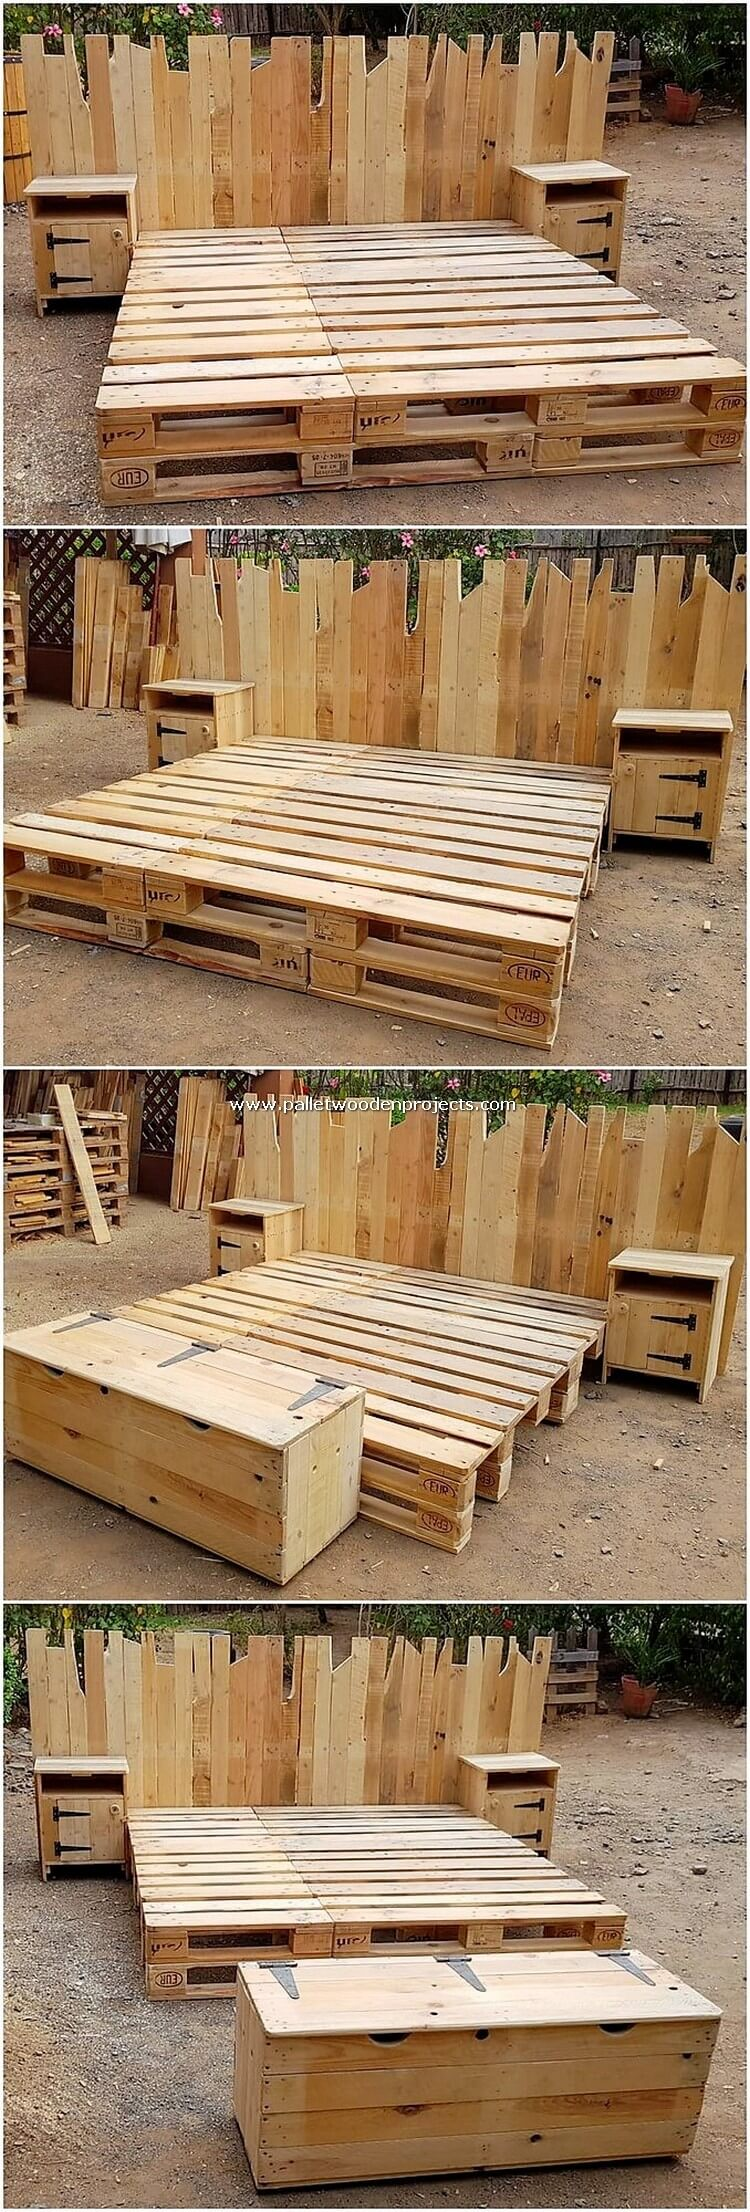 Incredible Do It Yourself Pallet Projects and Plans ...